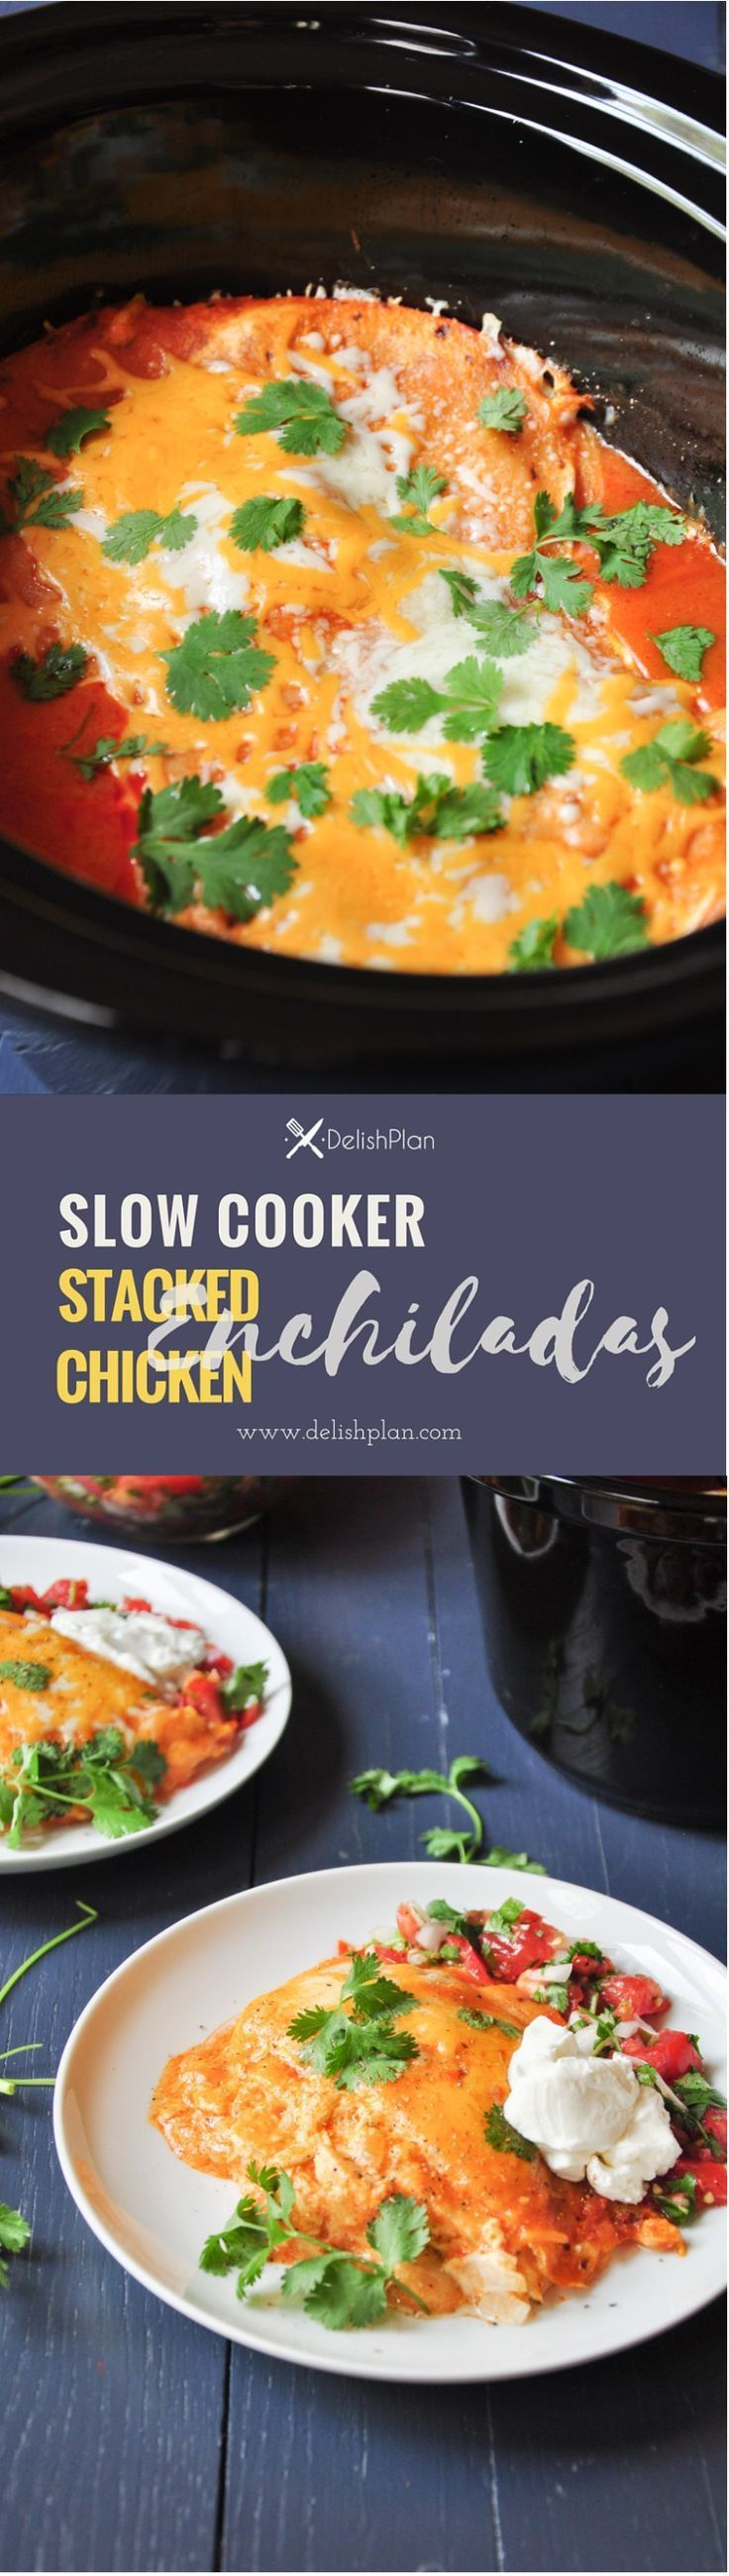 Cheesy and tasty chicken enchiladas stacked in a slow cooker. It's easy to prepare and a great way to use up leftover chicken or meat. #onepotmeal #glutenfree